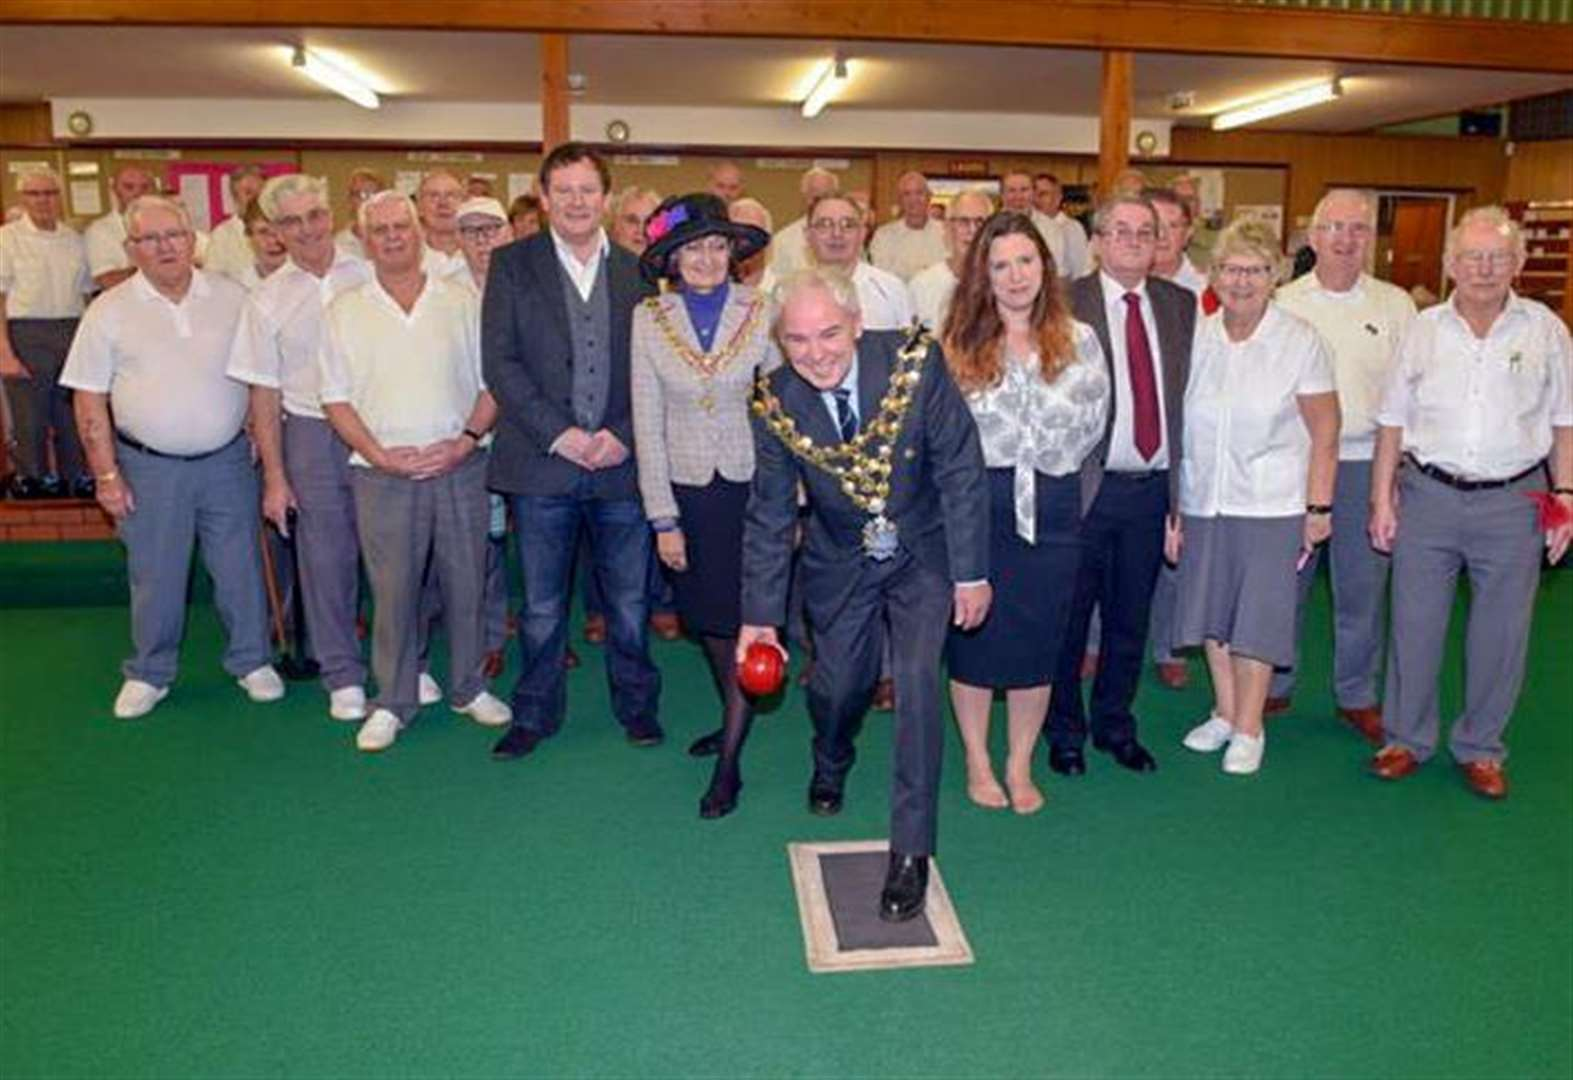 Wisbech Indoor Bowls Club is bowled out of Hudson Centre by new leisure management firm